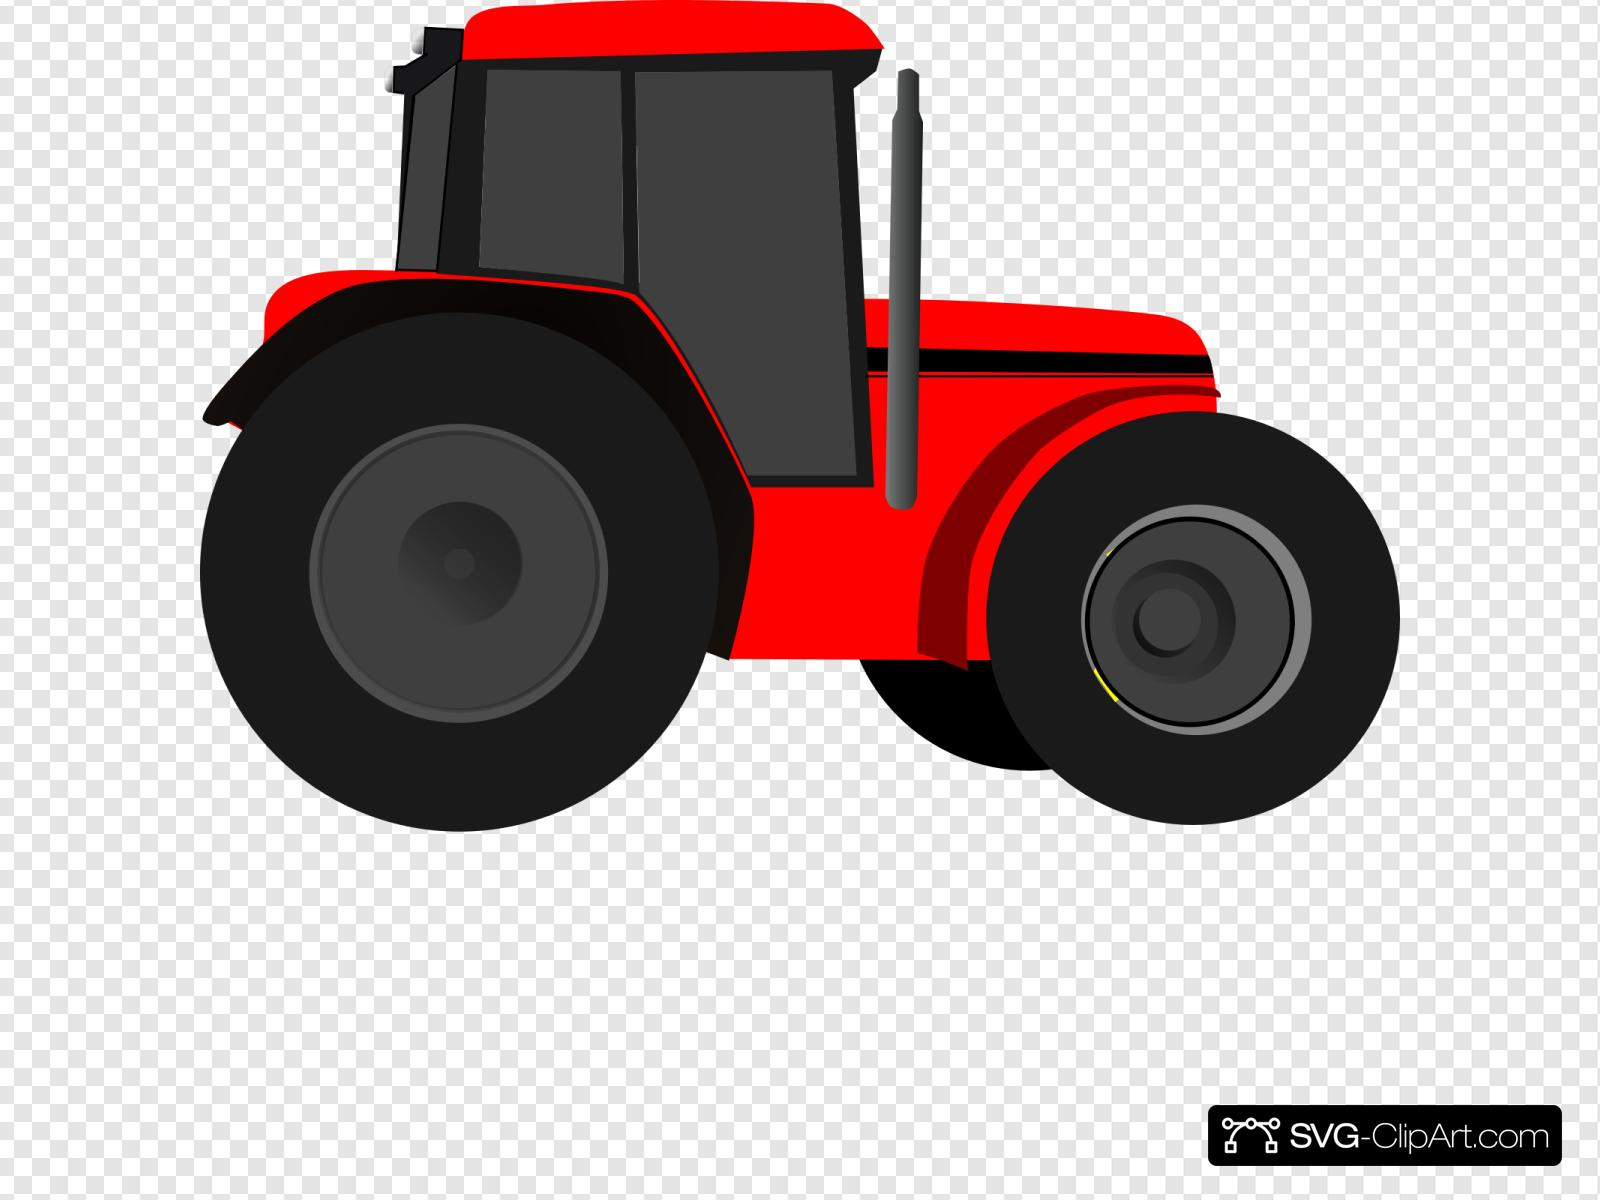 Red Tractor Clip art, Icon and SVG.